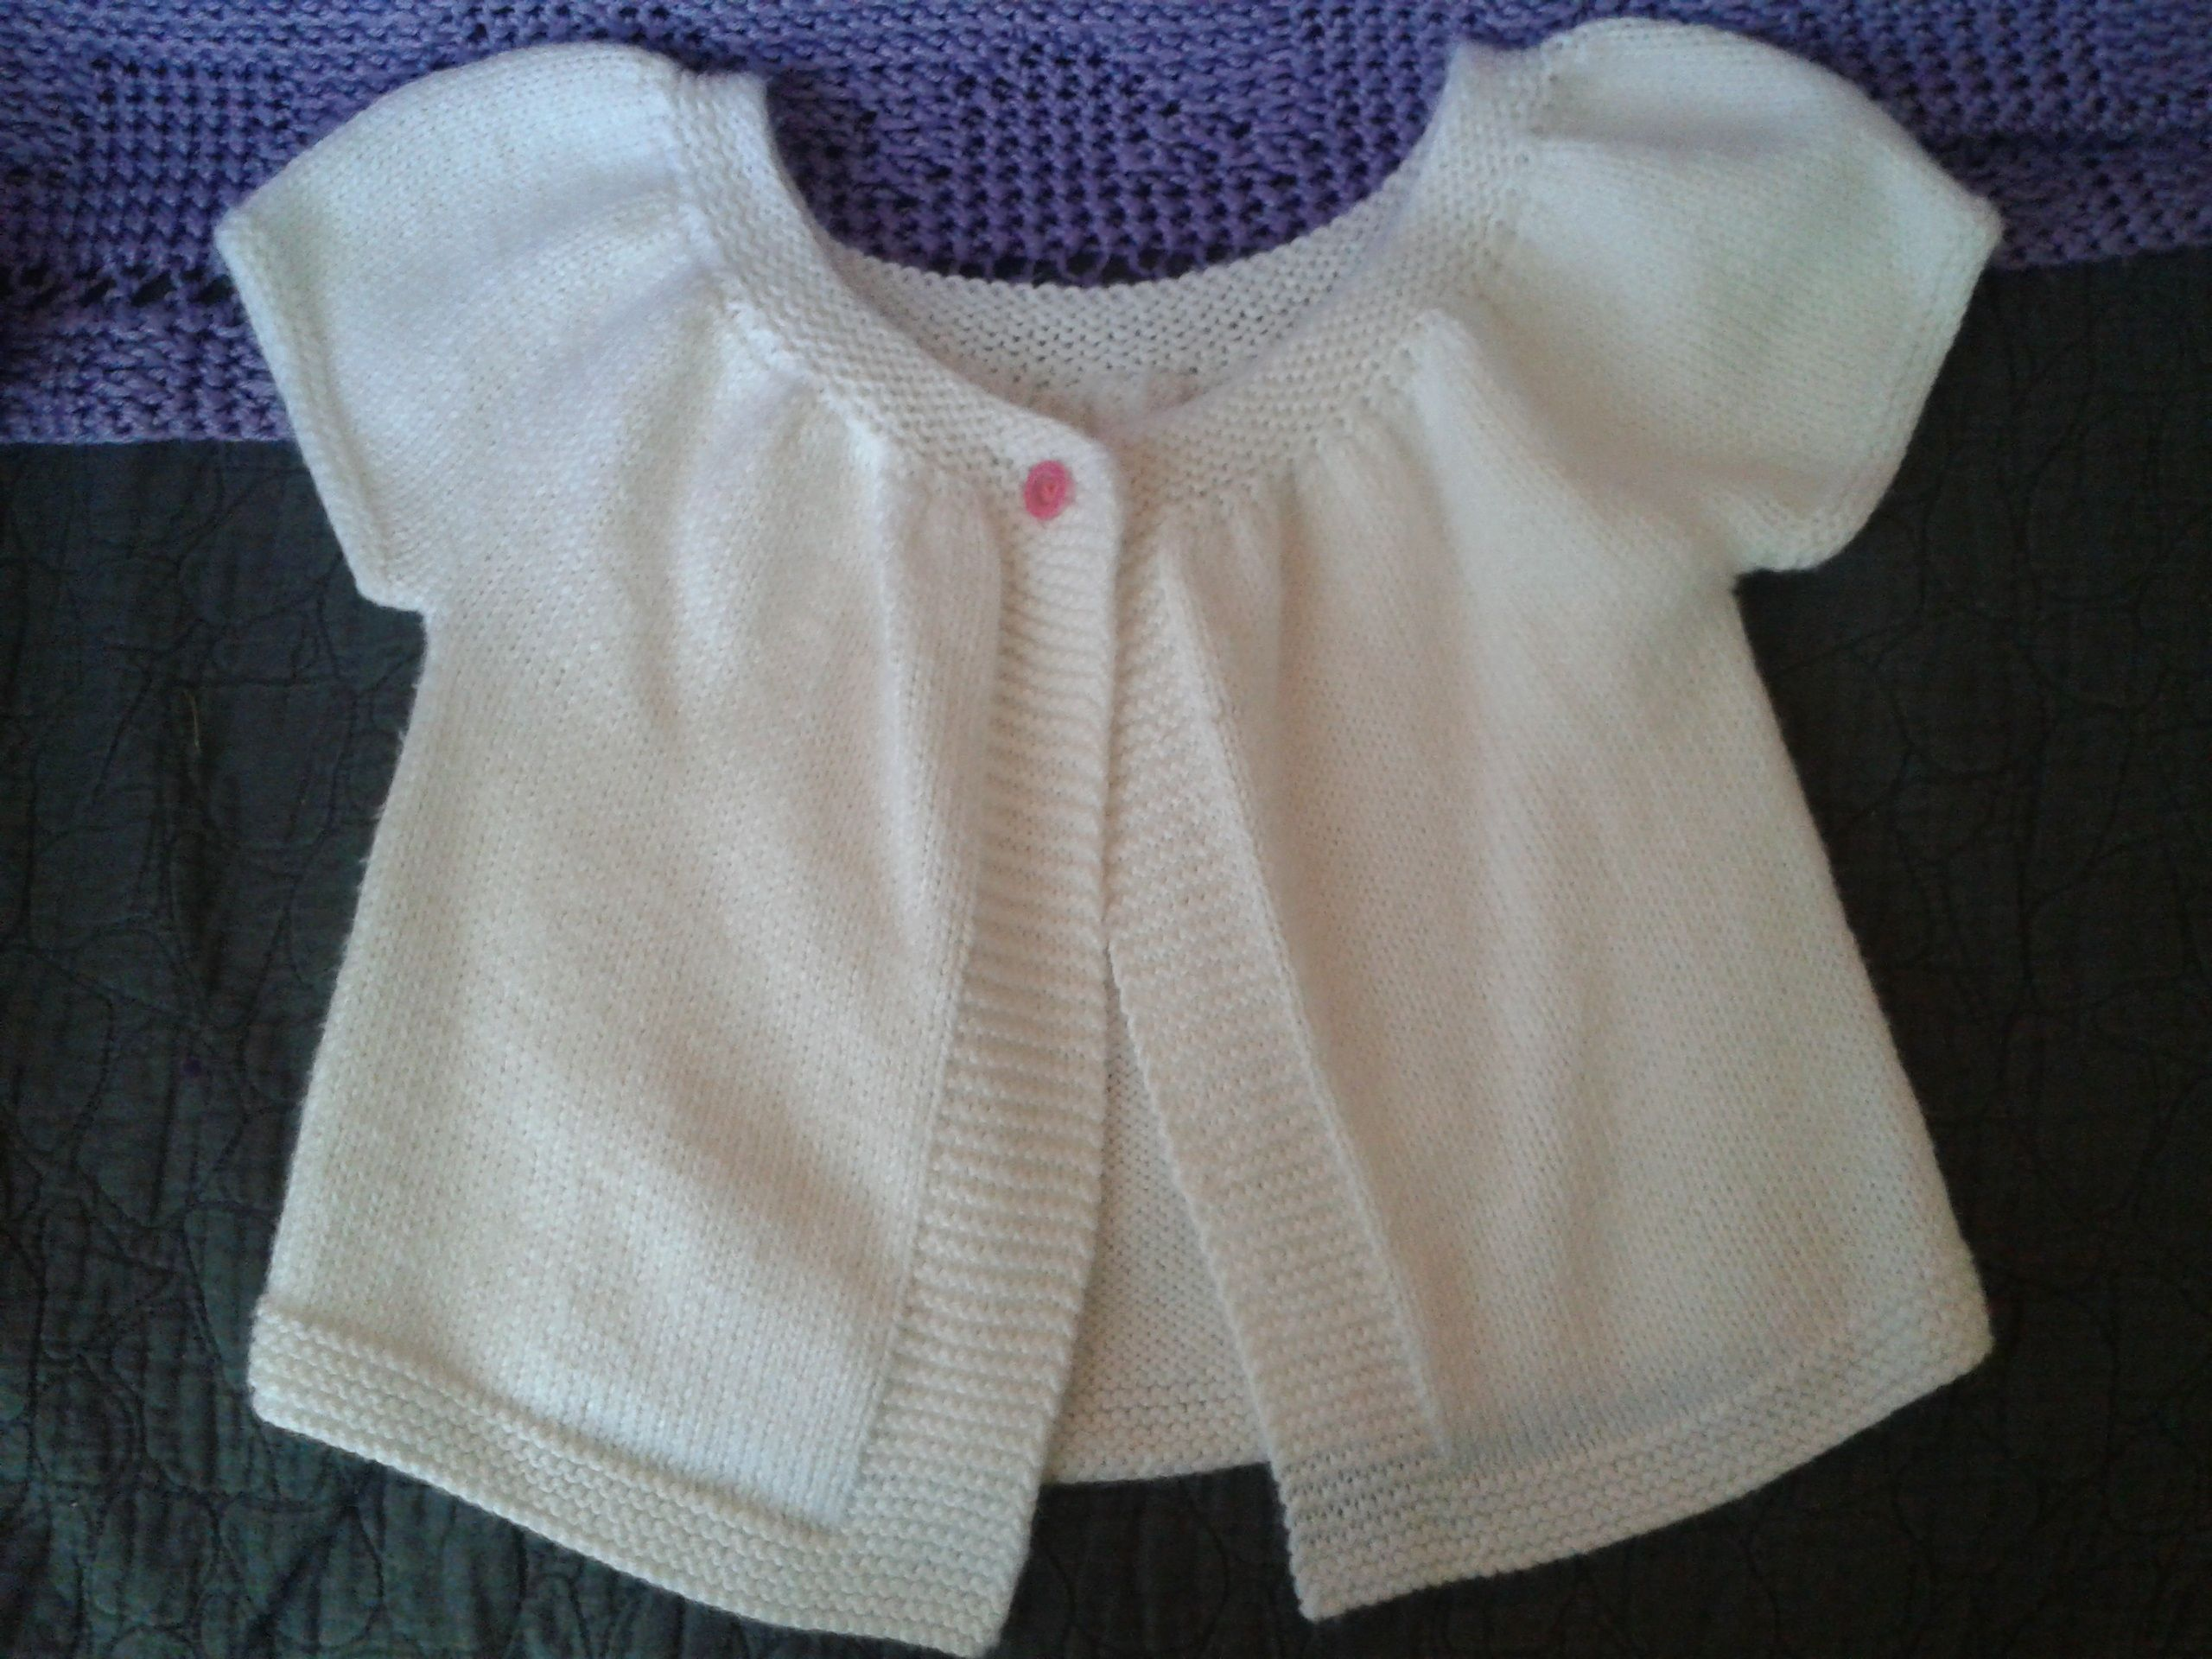 Short sleeve white cardigan with hot pink button | Things Created ...